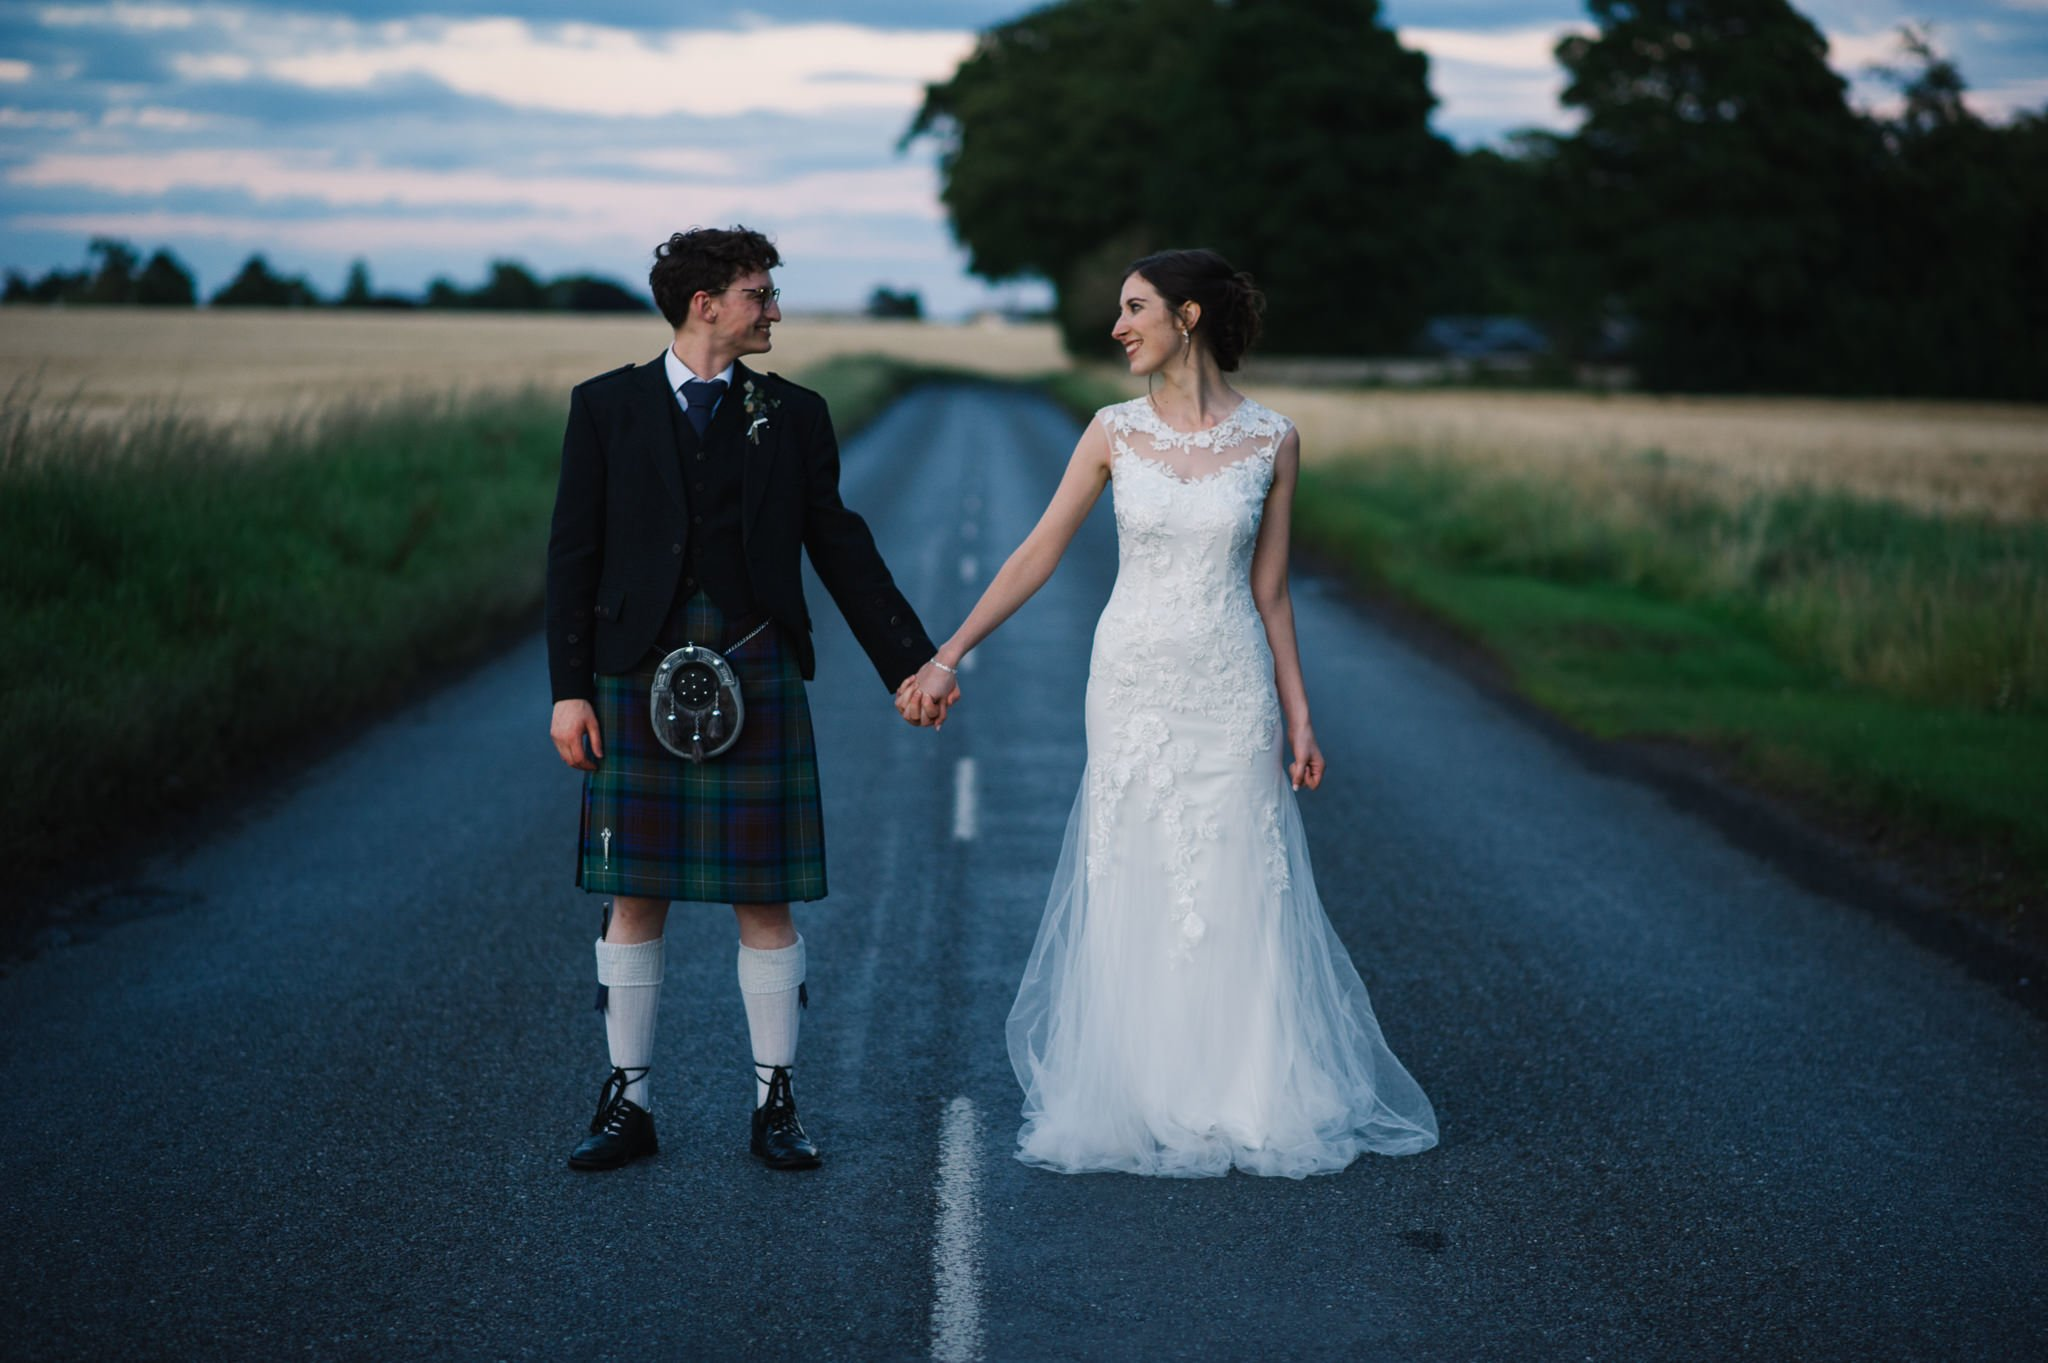 bride and groom holding hands on a country road